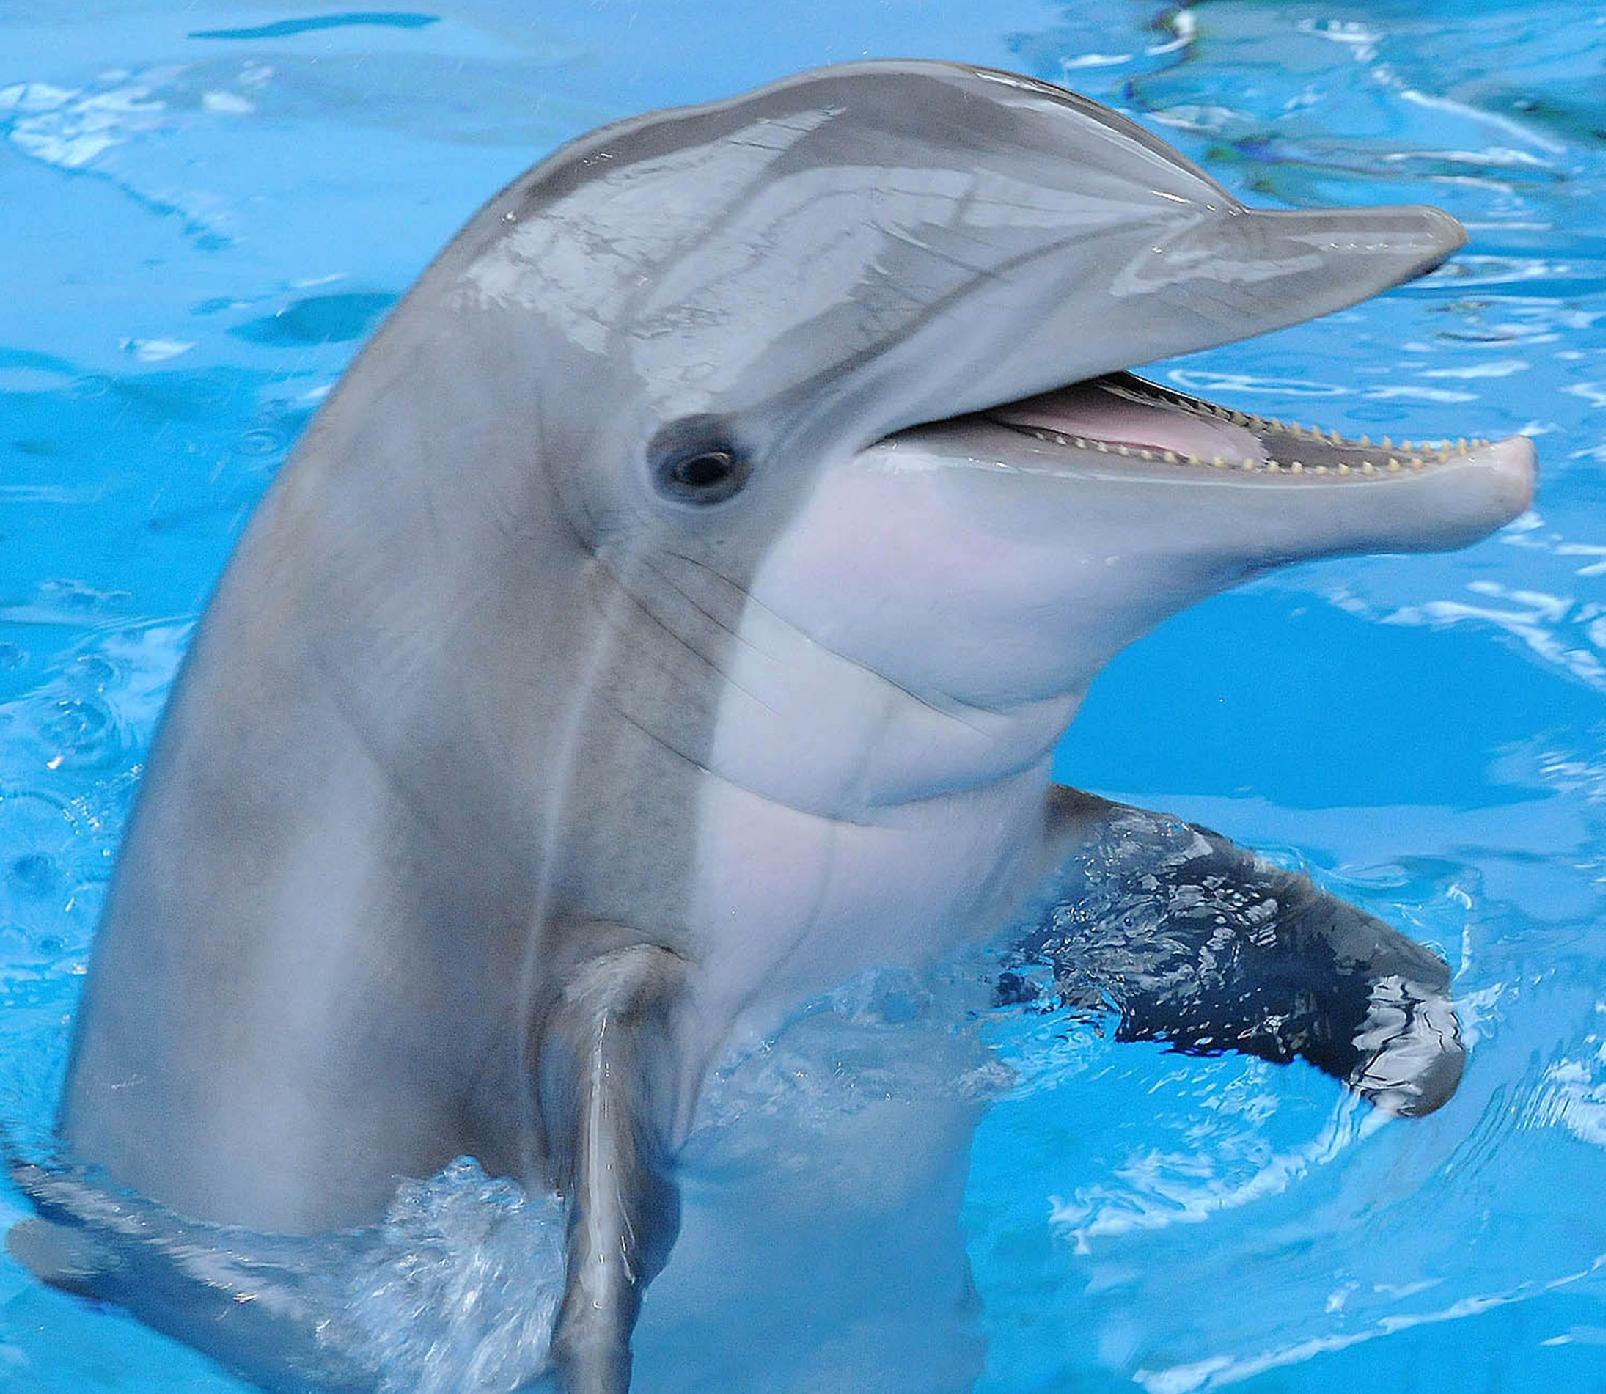 This Oct. 3, 2012, photo provided by the Brookfield Zoo, shows the dolphin Allie at the zoo in Brookfield, Ill. (AP Photo/Brookfield Zoo, Jim Schultz)